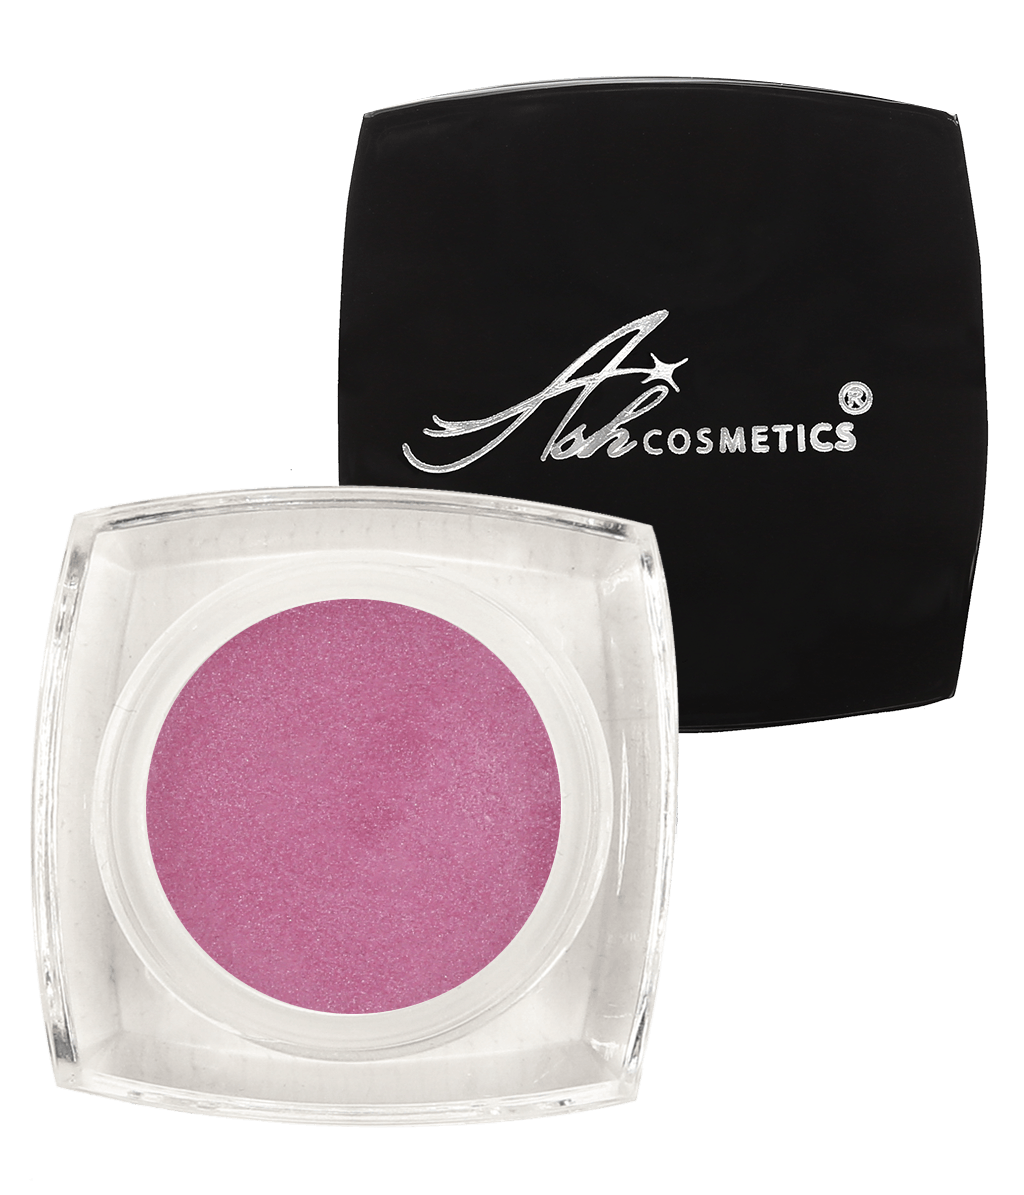 AshcosmeticsCream Eye Shadow Glamour Pot Shade Rose